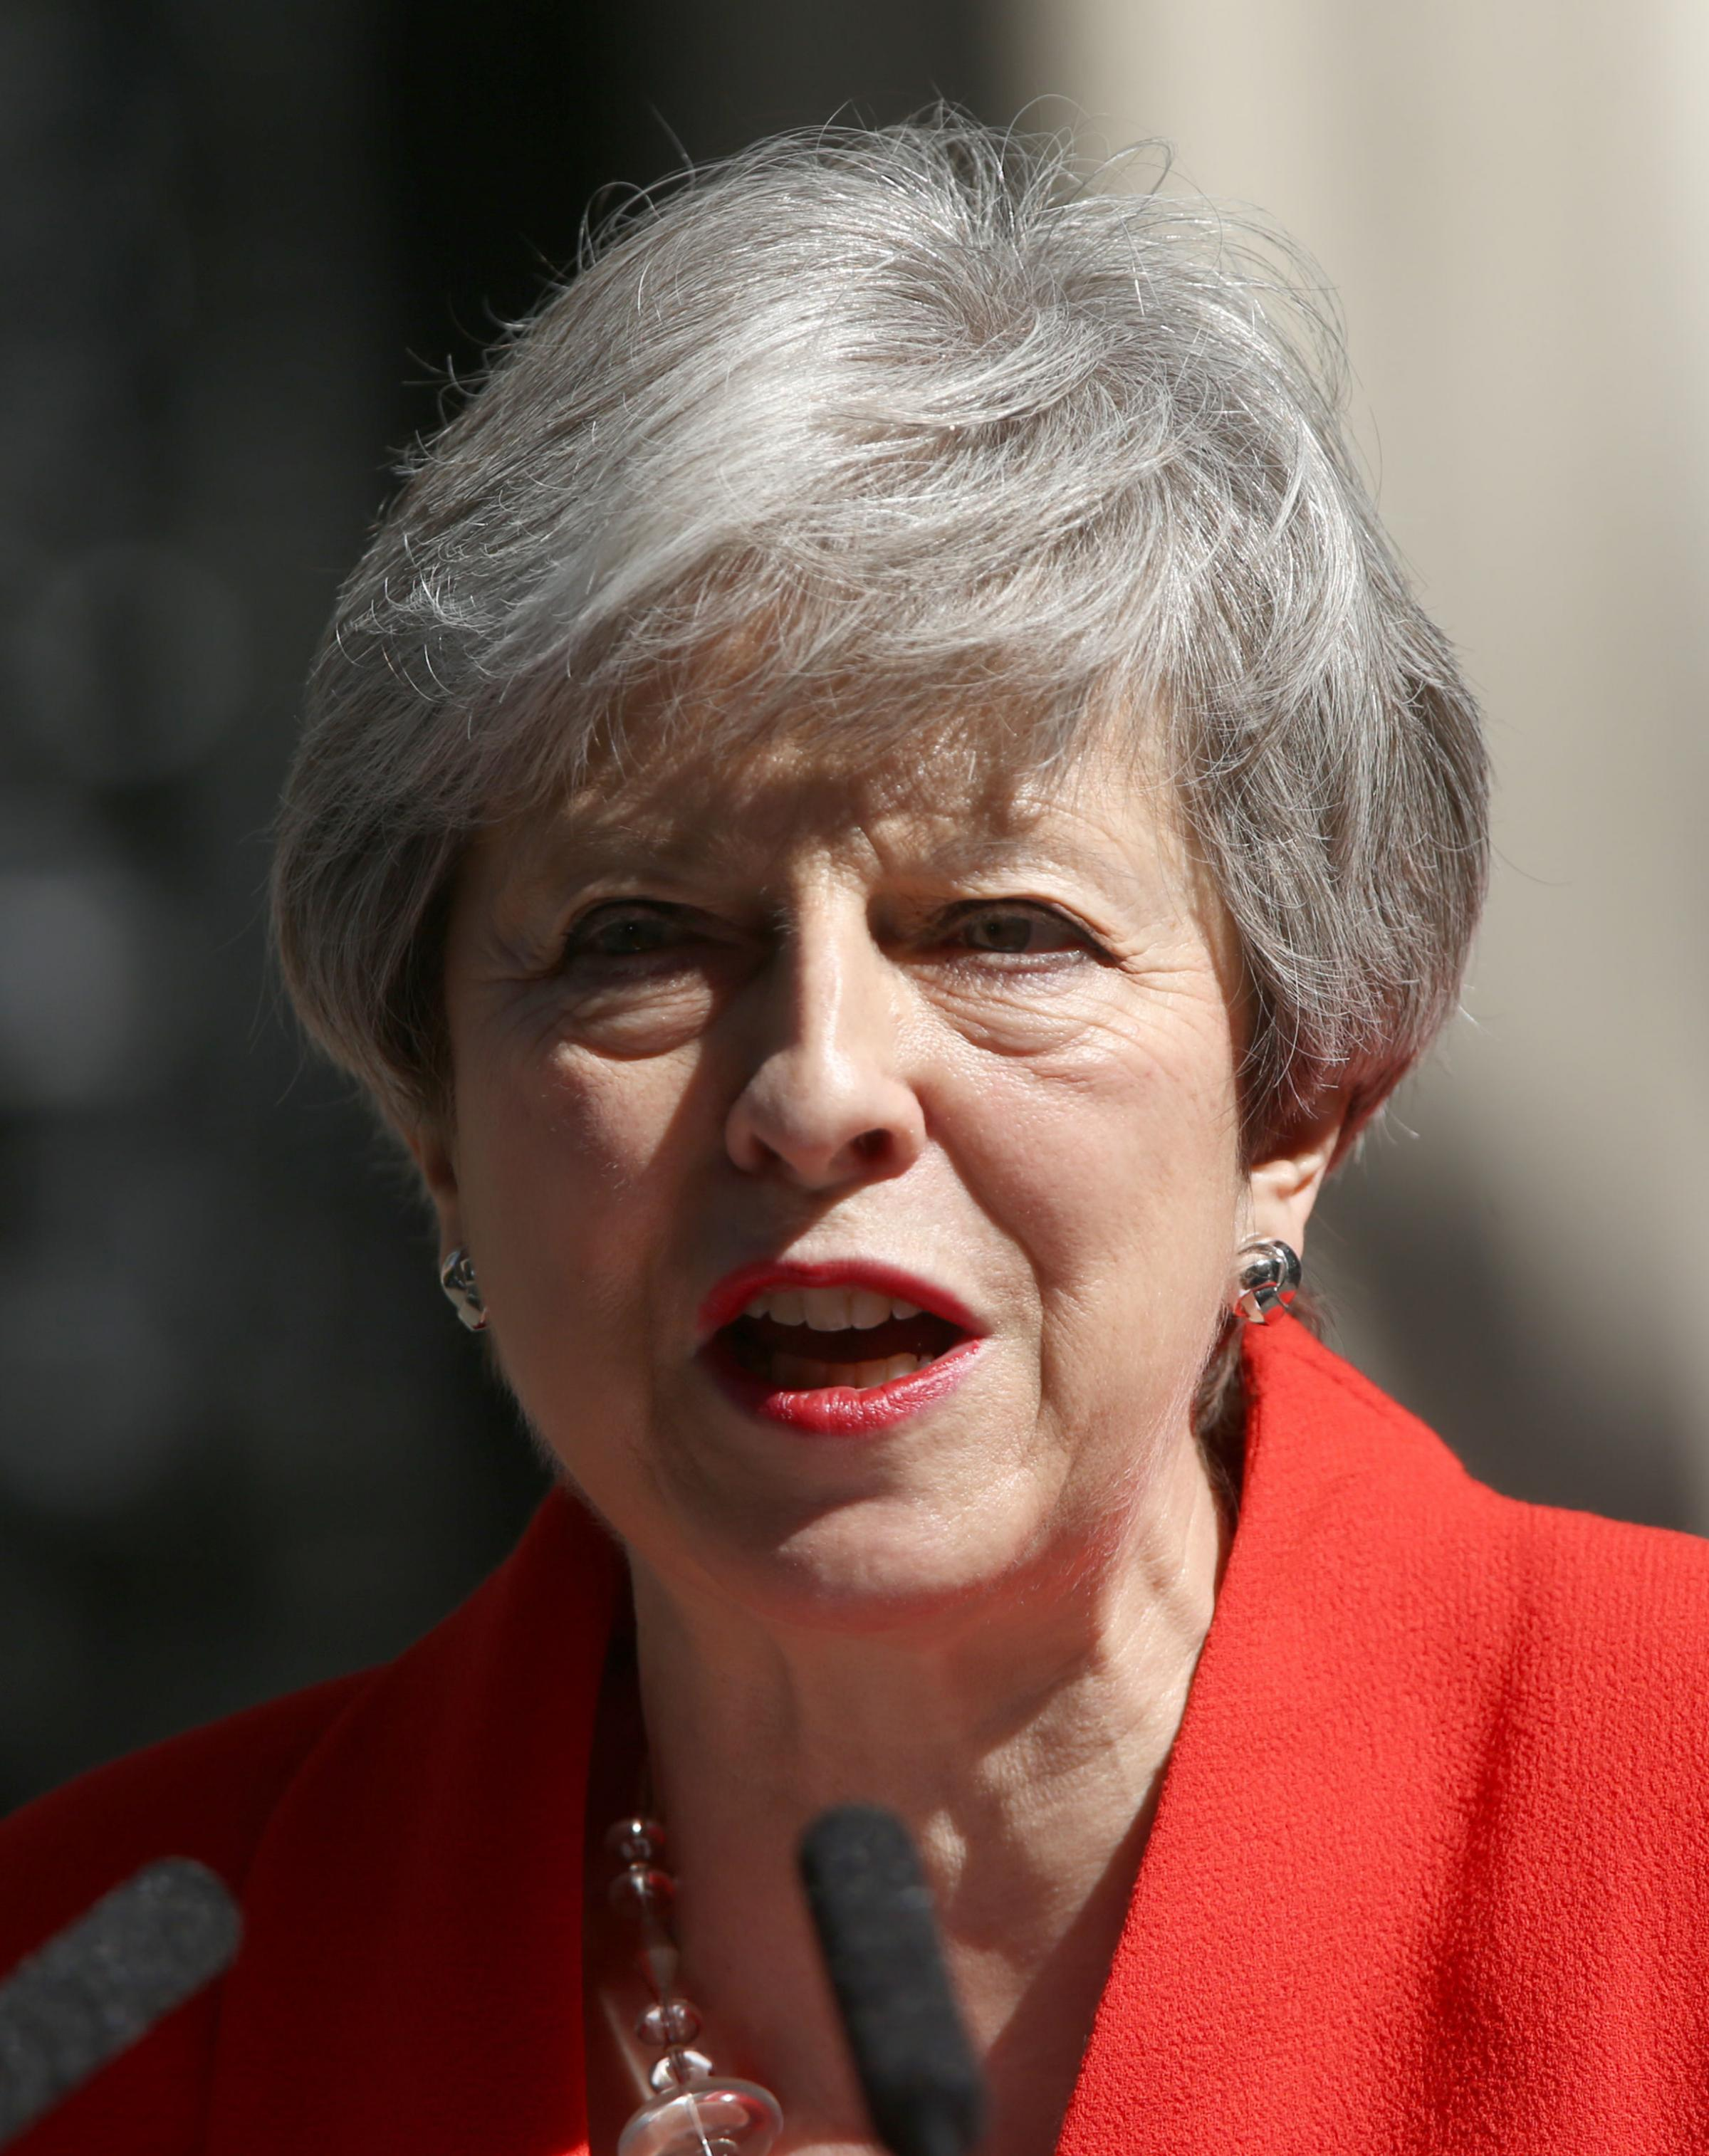 Prime Minister Theresa May makes a statement outside at 10 Downing Street in London, where she announced she is standing down as Tory party leader on Friday June 7. PRESS ASSOCIATION Photo. Picture date: Friday May 24, 2019. See PA story POLITICS Brexit.